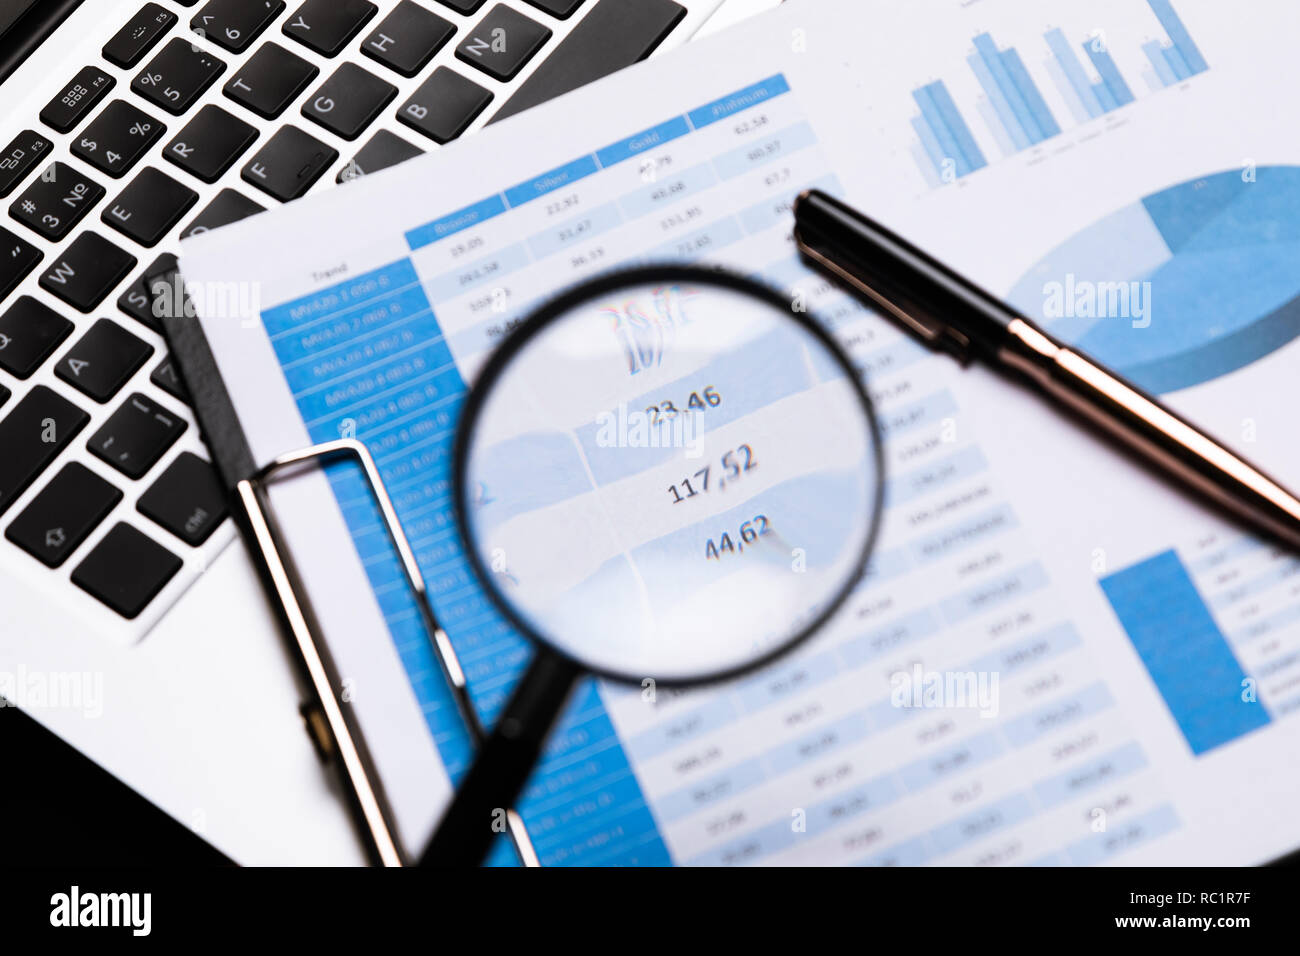 Office workplace with magnifier and stationery - Stock Image